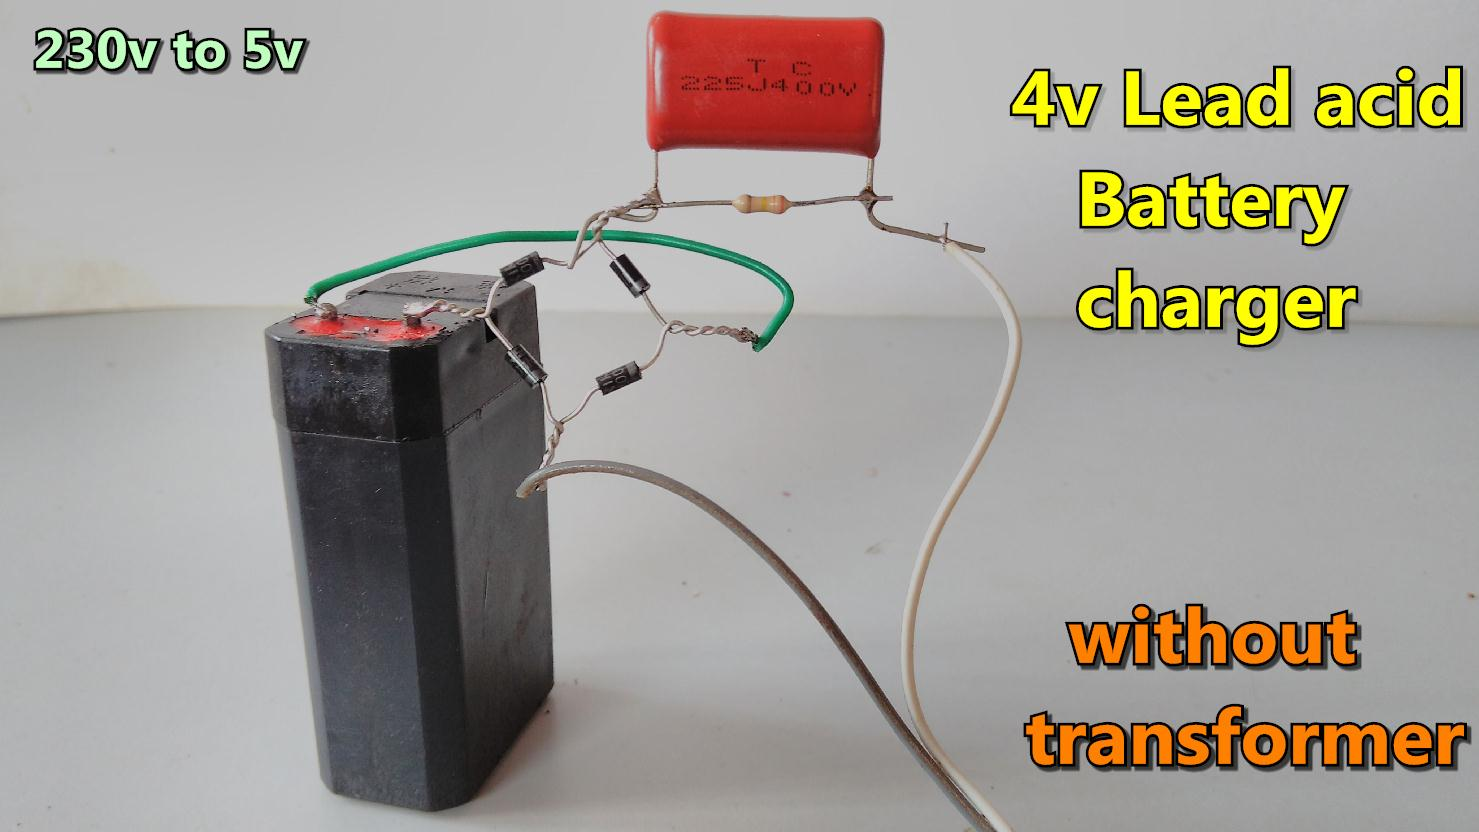 4v Lead Acid Battery Charger Without Transformer 230v Ac 5v Dc Very Low Cost